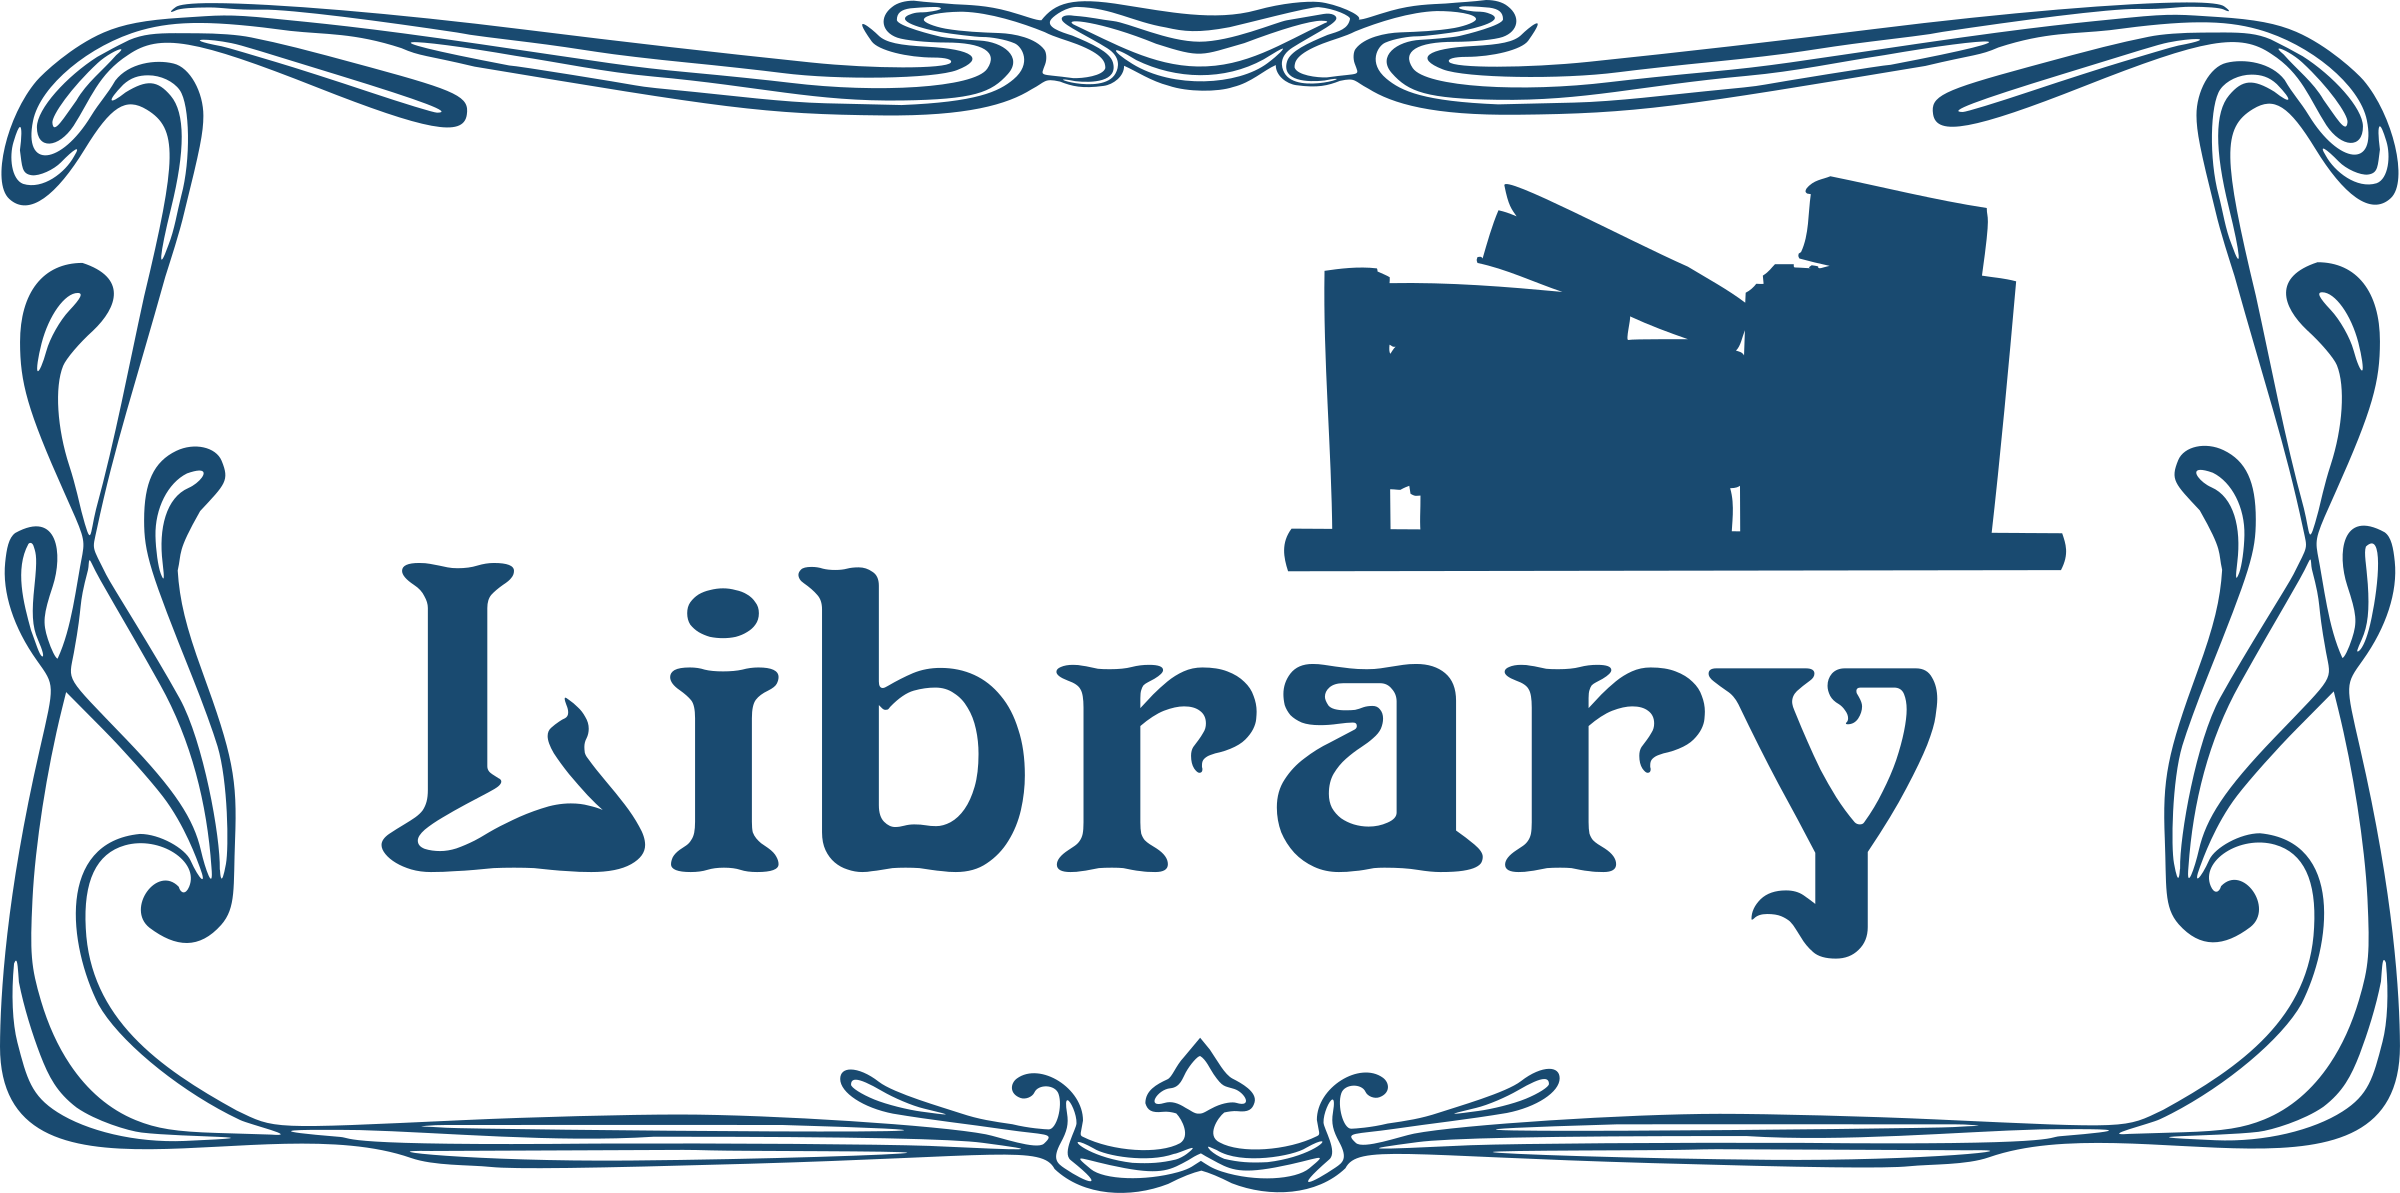 Library clipart sign Art Clipart Library Art Clip